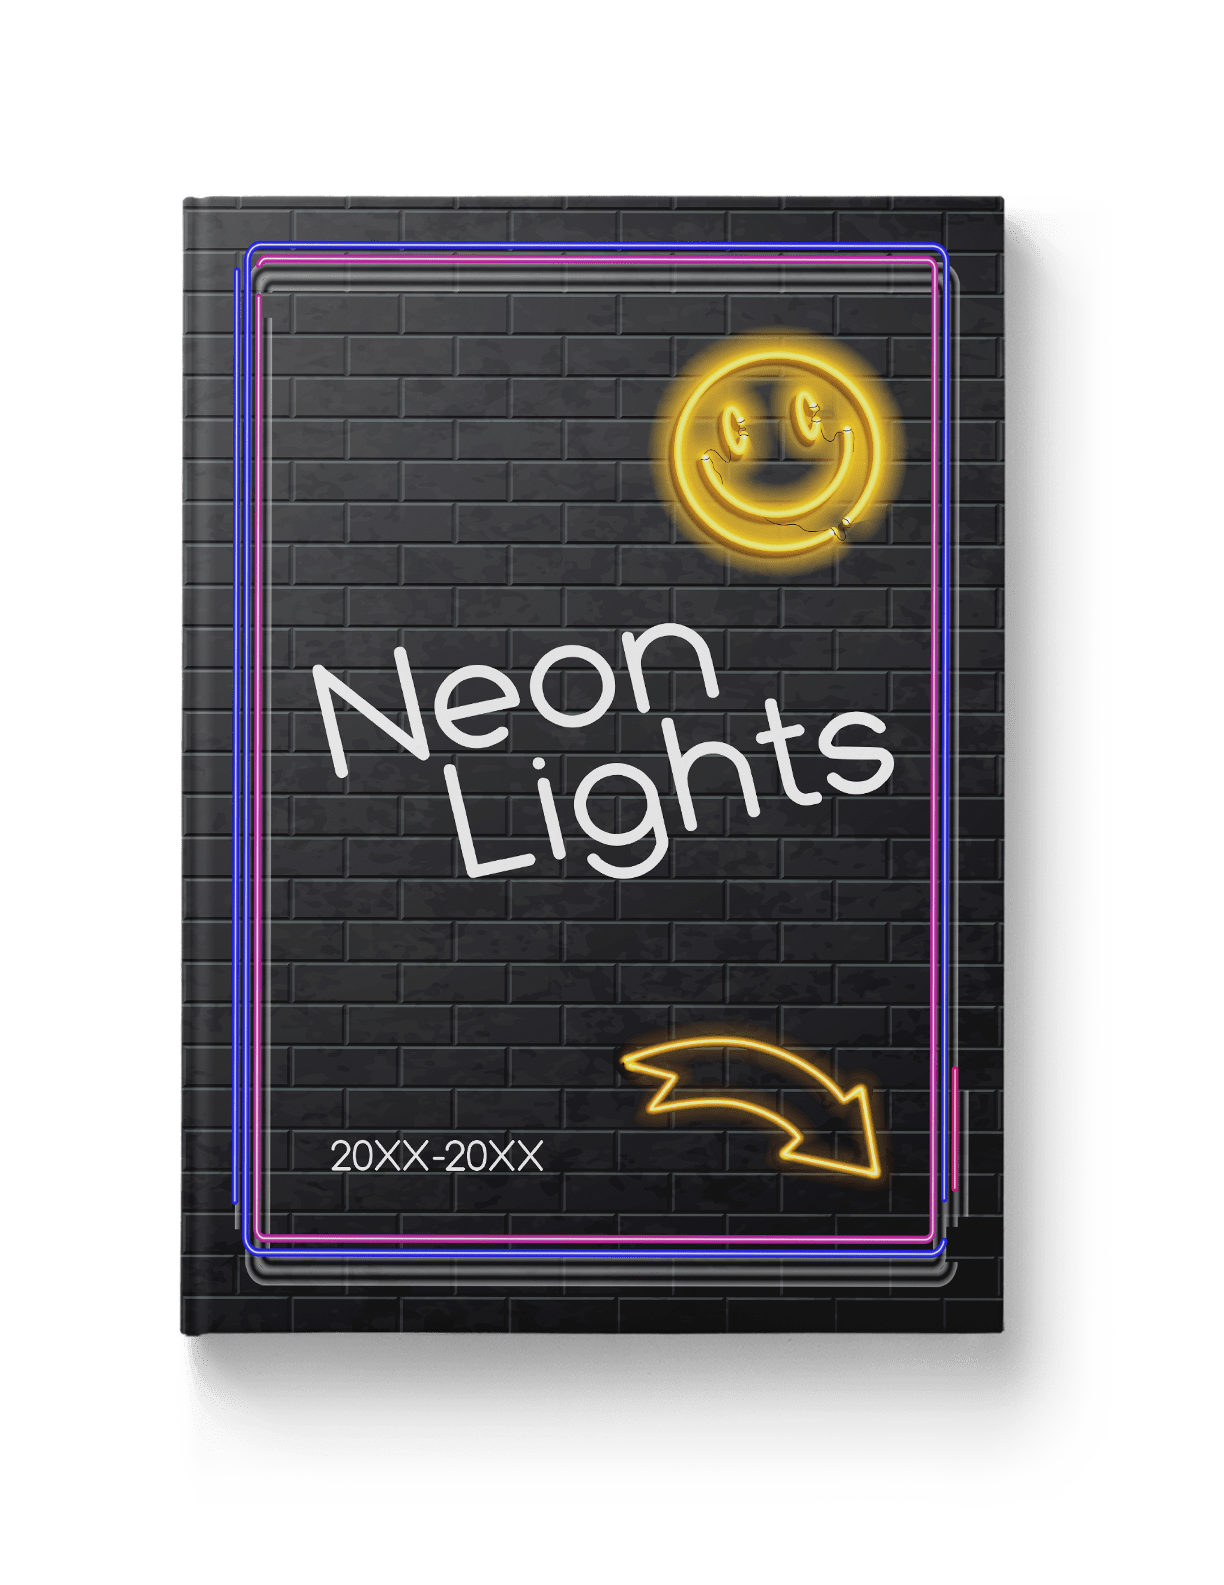 Neon emojis for yearbook theme